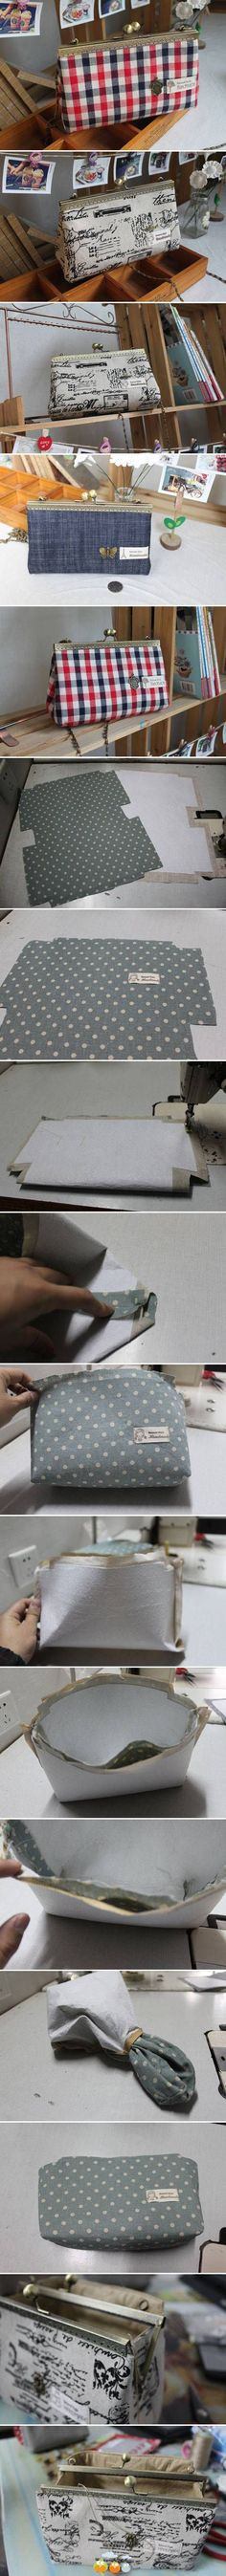 DIY Simple Handbag DIY Simple Handbag by diyforever Diy Handbag, Diy Purse, Clutch Purse, Diy Clutch, Purse Wallet, My Bags, Purses And Bags, Lv Pochette, Diy Sac